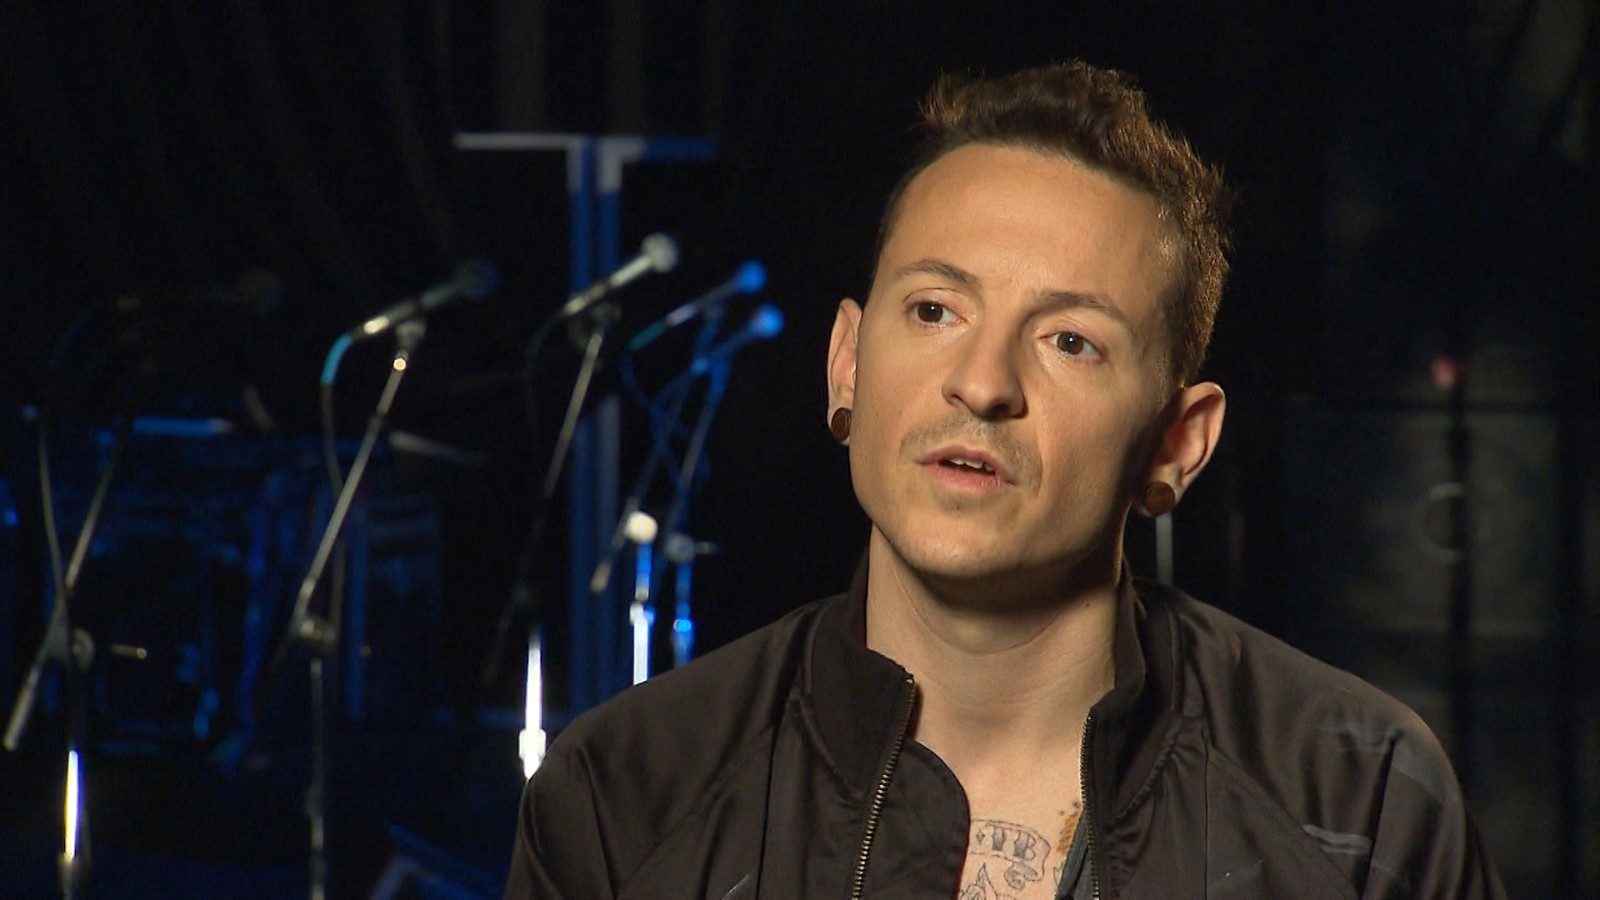 Linkin park singer on his past drug use 2009 cnn video stopboris